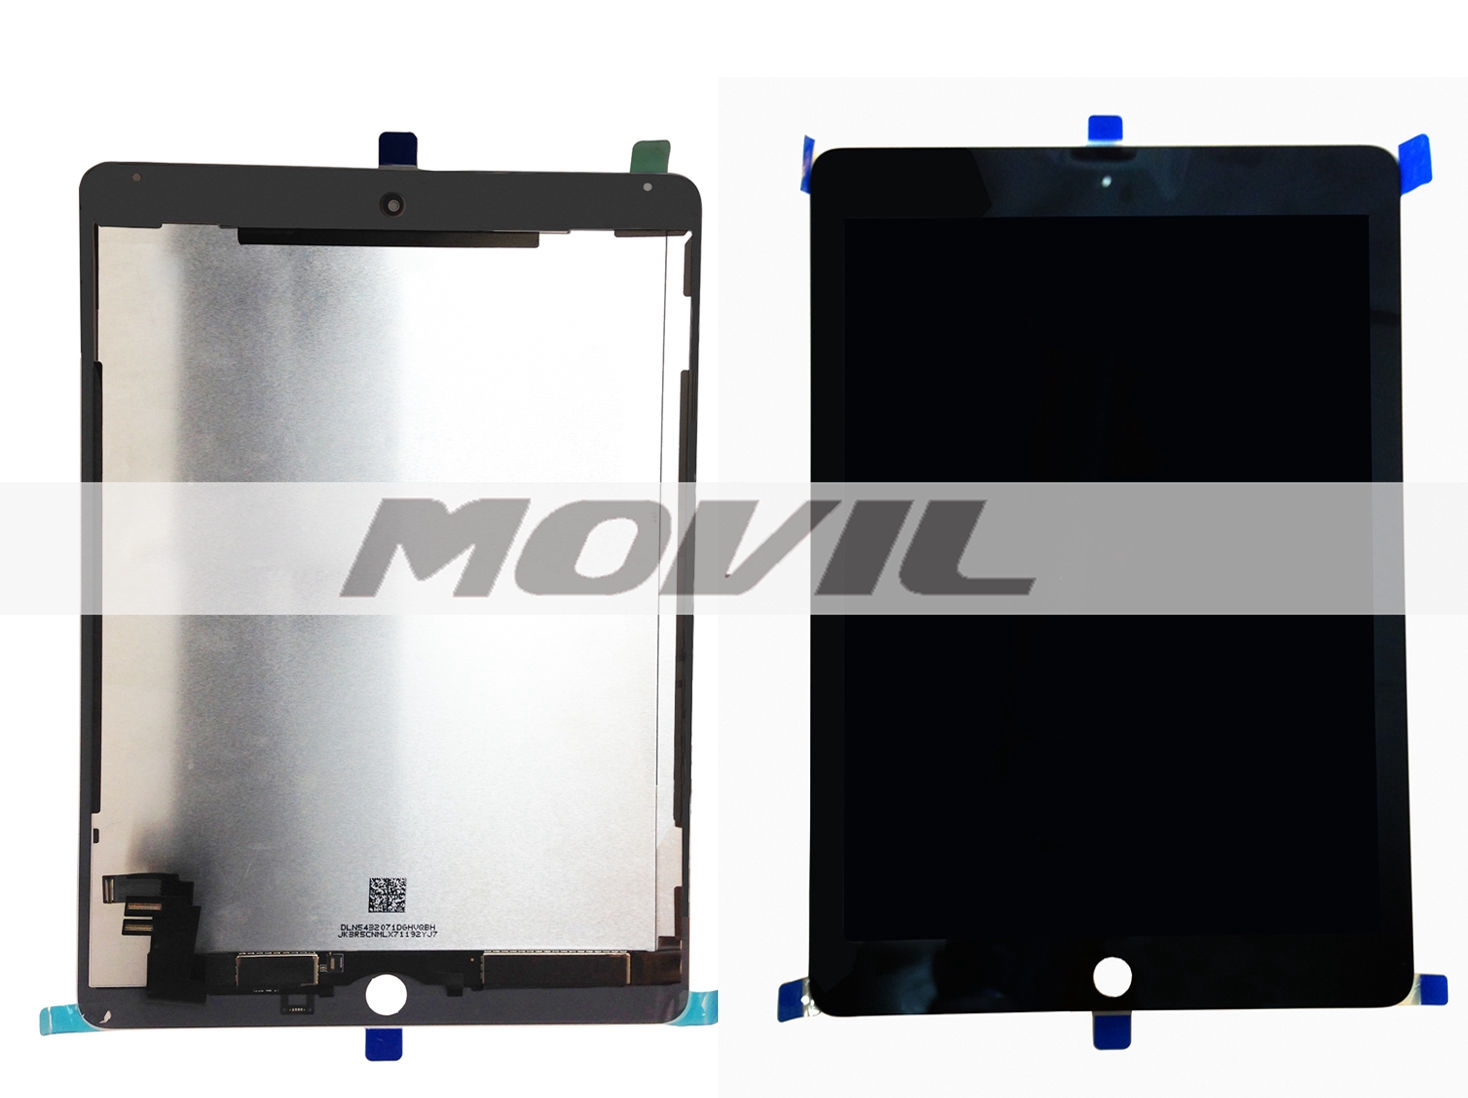 Mic MicroPhone Internal Part for Iphone 5 5G - movil